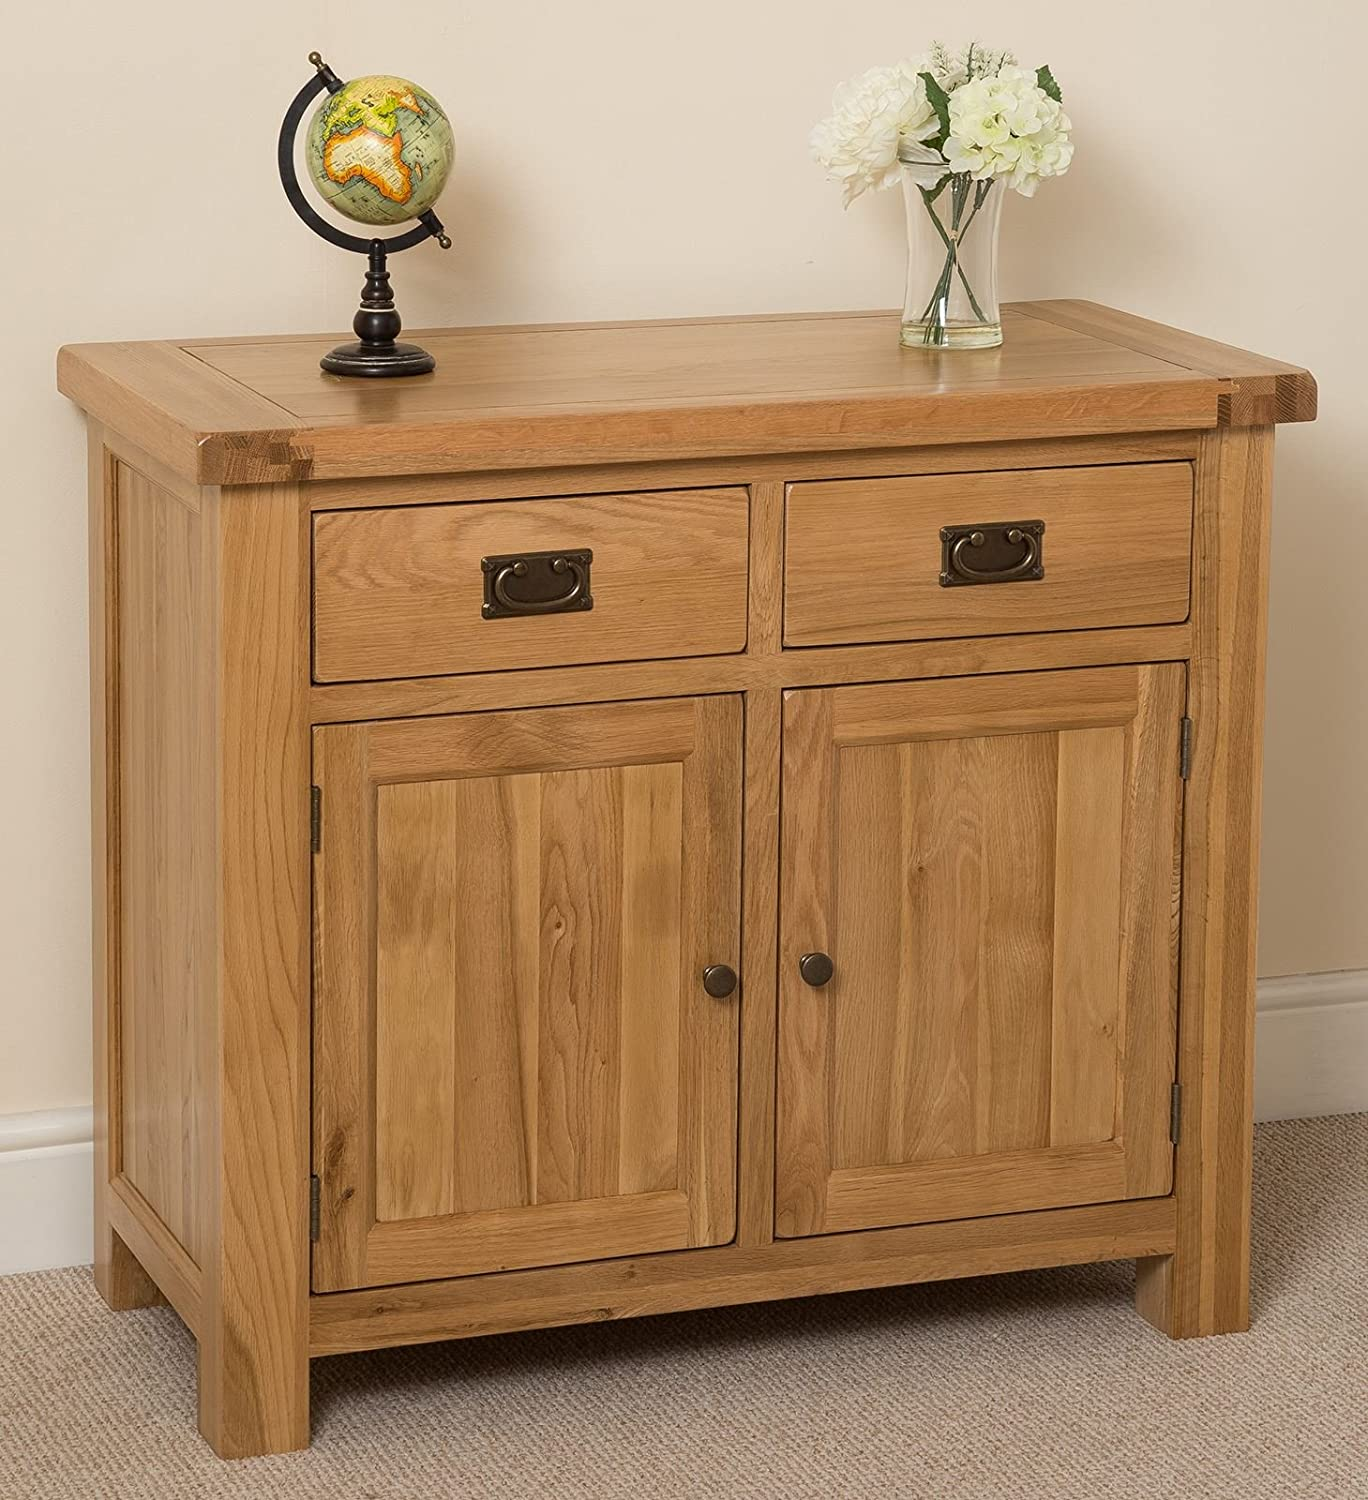 Ordinaire Cottage Solid Oak Small Sideboard Cabinet, 98 X 47 X 86 Cm: Amazon.co.uk:  Kitchen U0026 Home